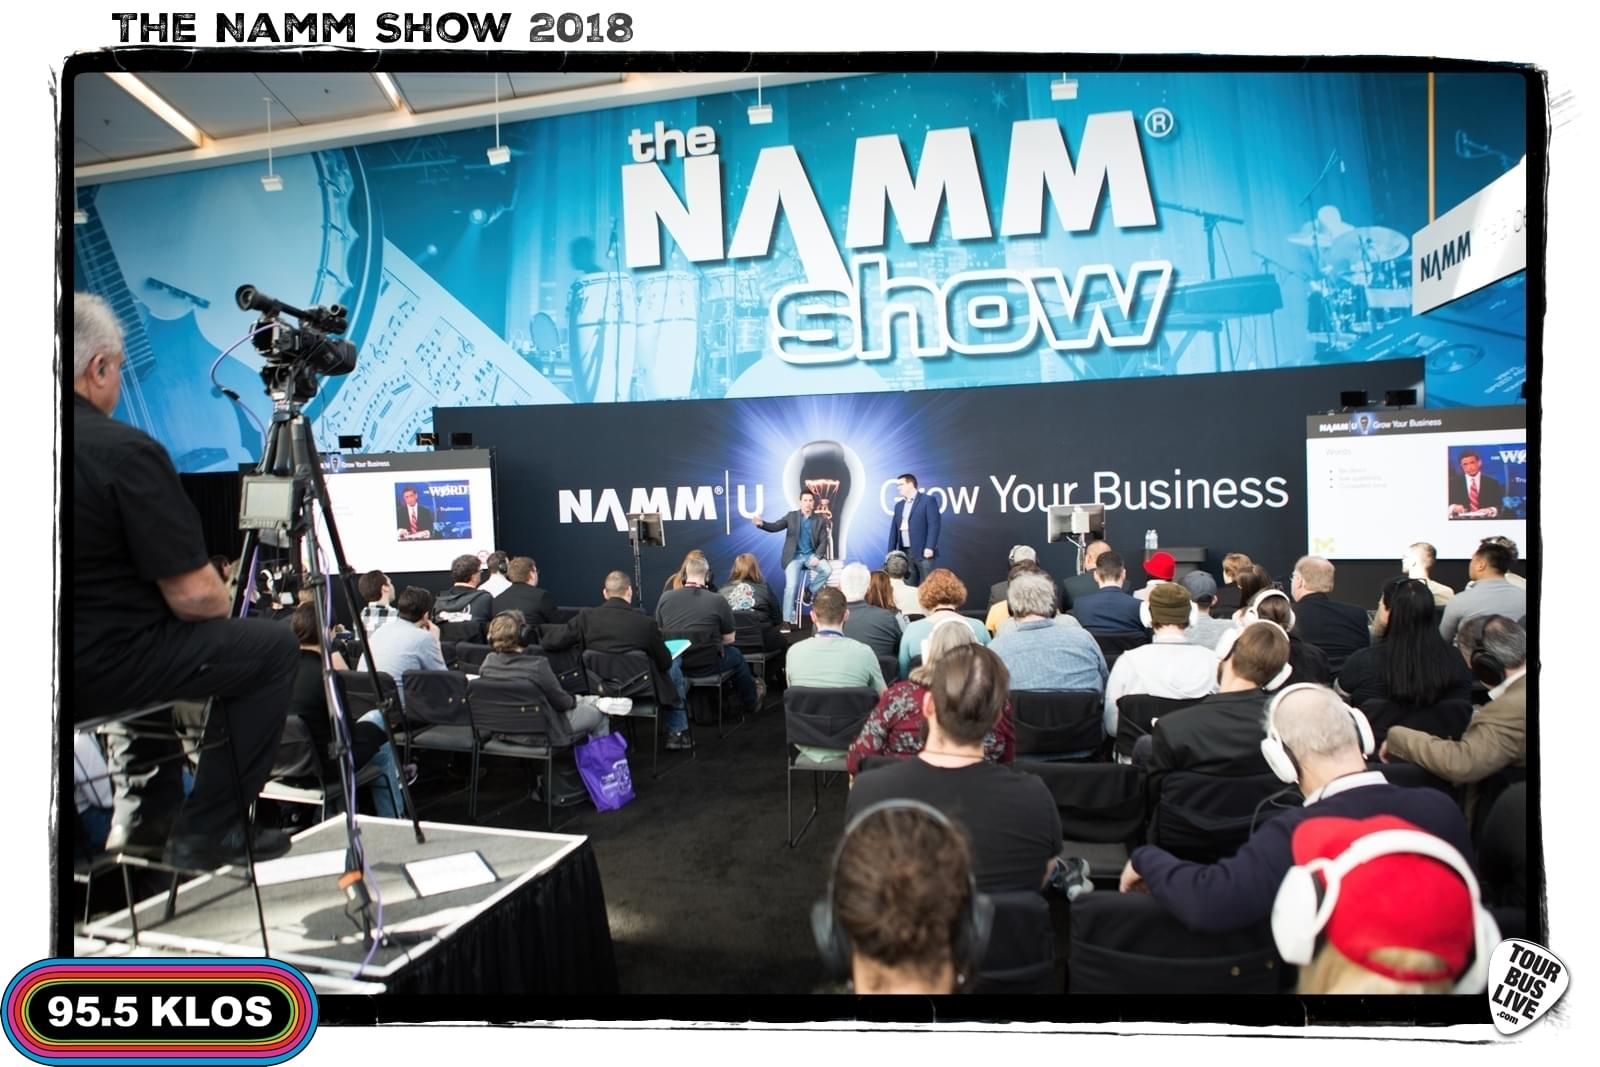 Photos: NAMM show 2018